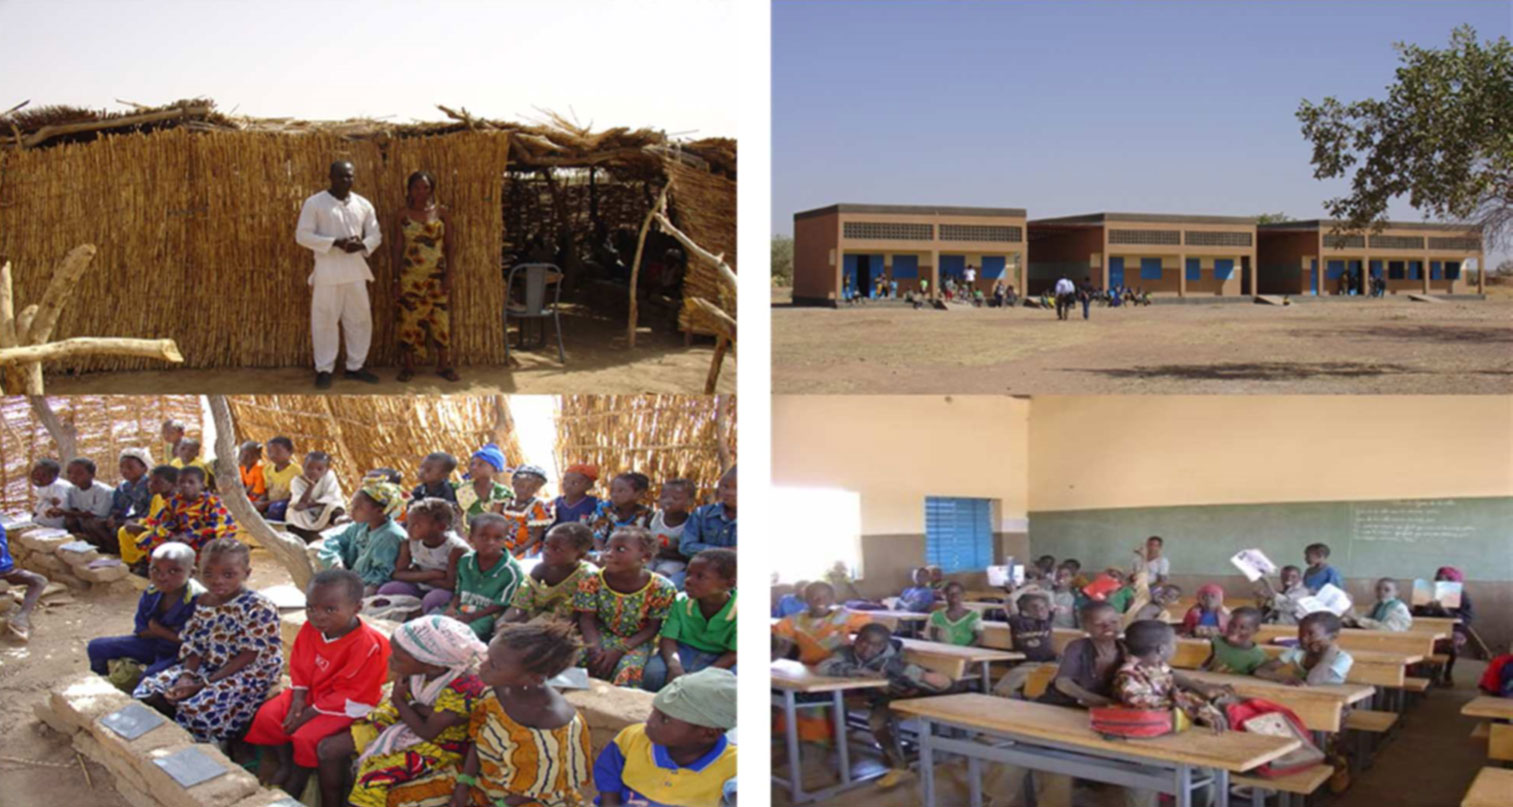 Before and after photos in Burkina Faso of a traditional school with a basic structure and lack of proper desks and chairs, and a newly-constructed BRIGHT program school with modern brick structure and classrooms with desks and chairs.